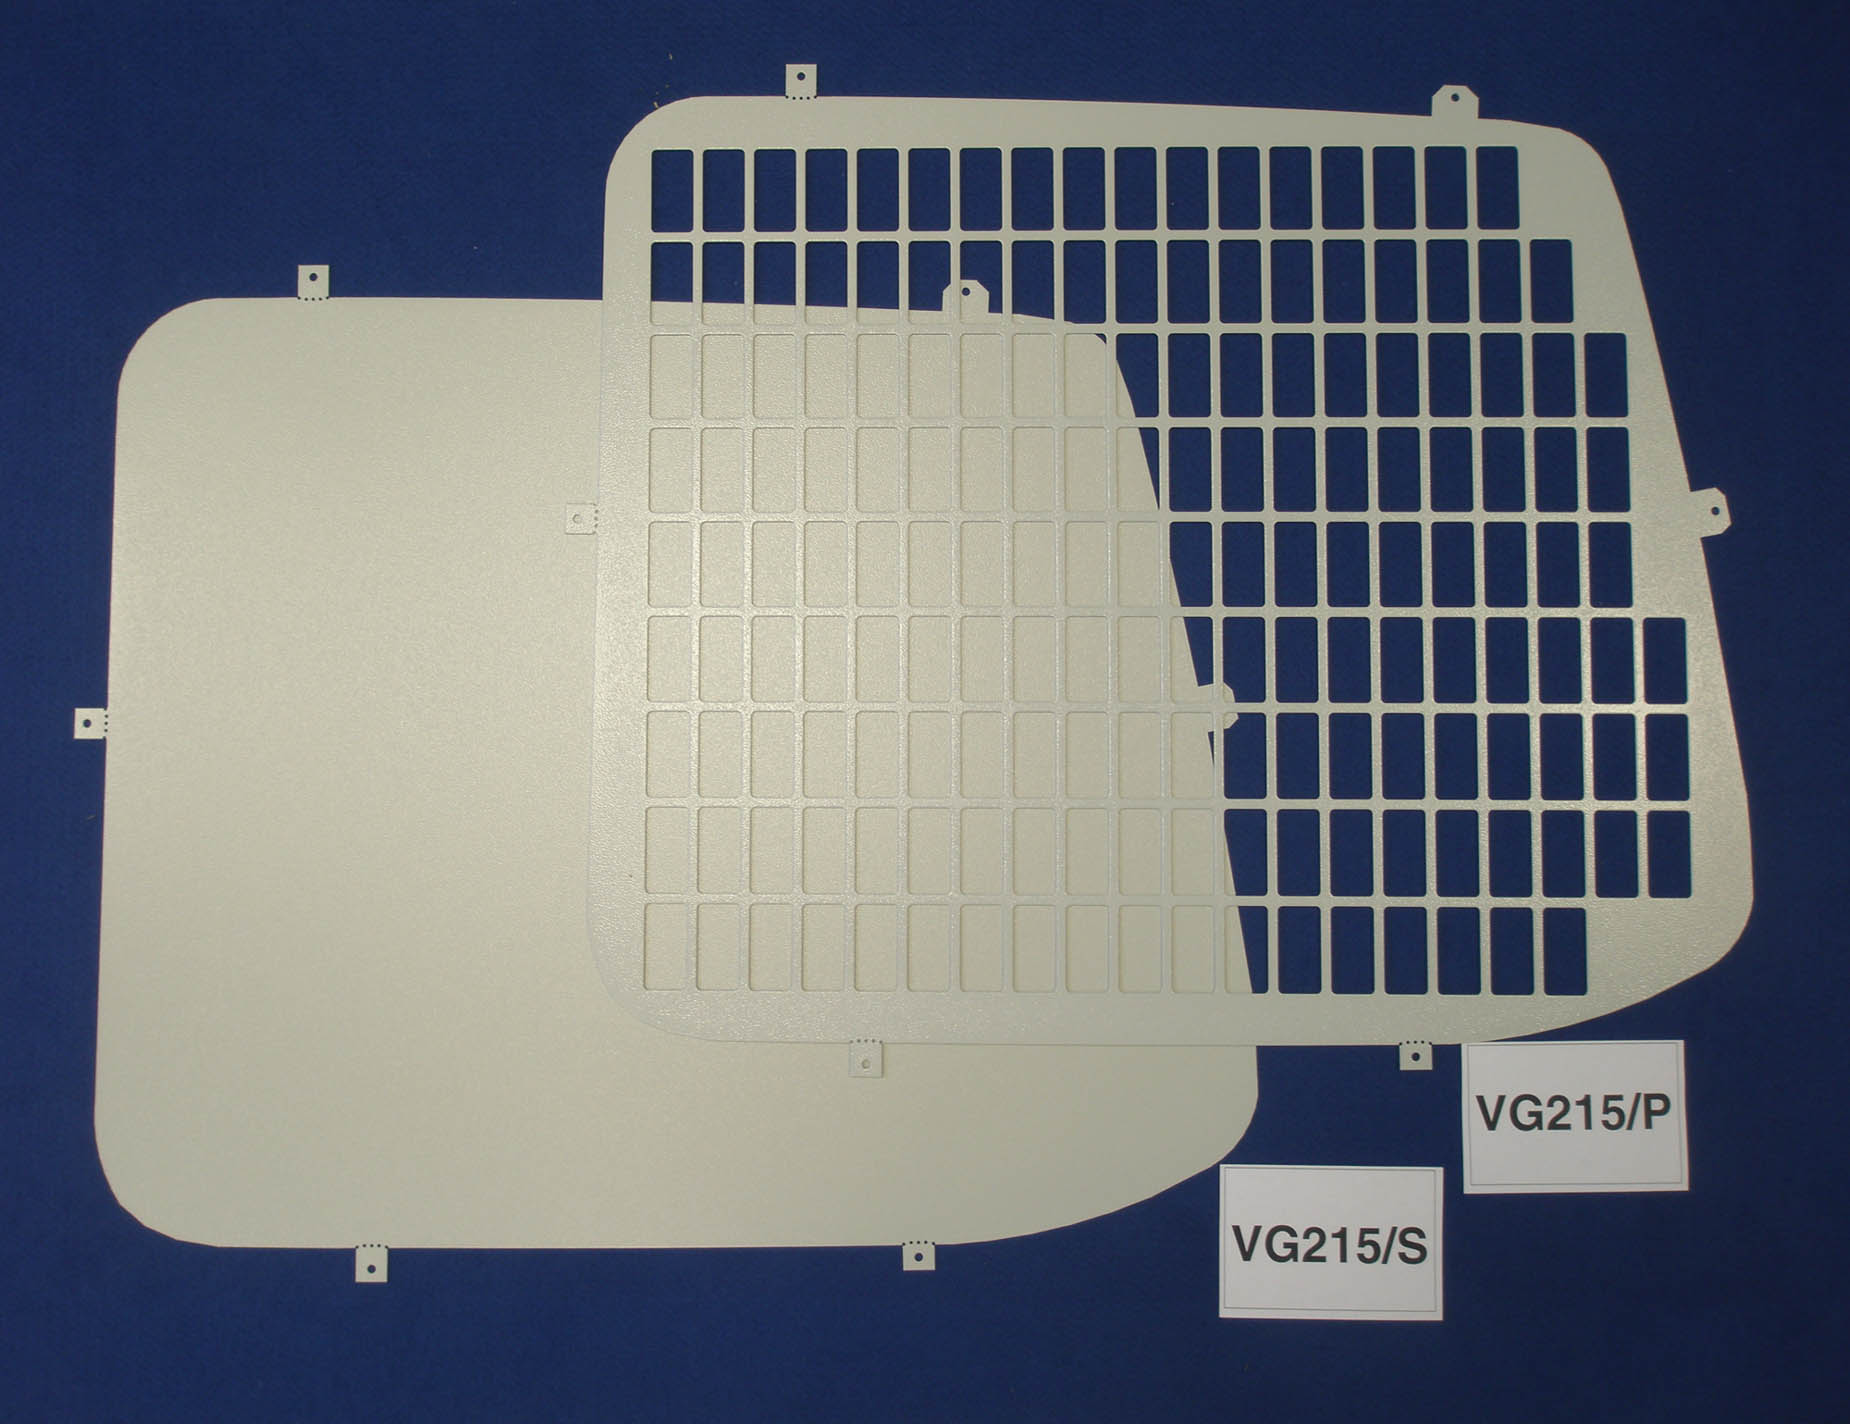 Volkswagen Vw T5 Transporter Van Rear Window Grilles